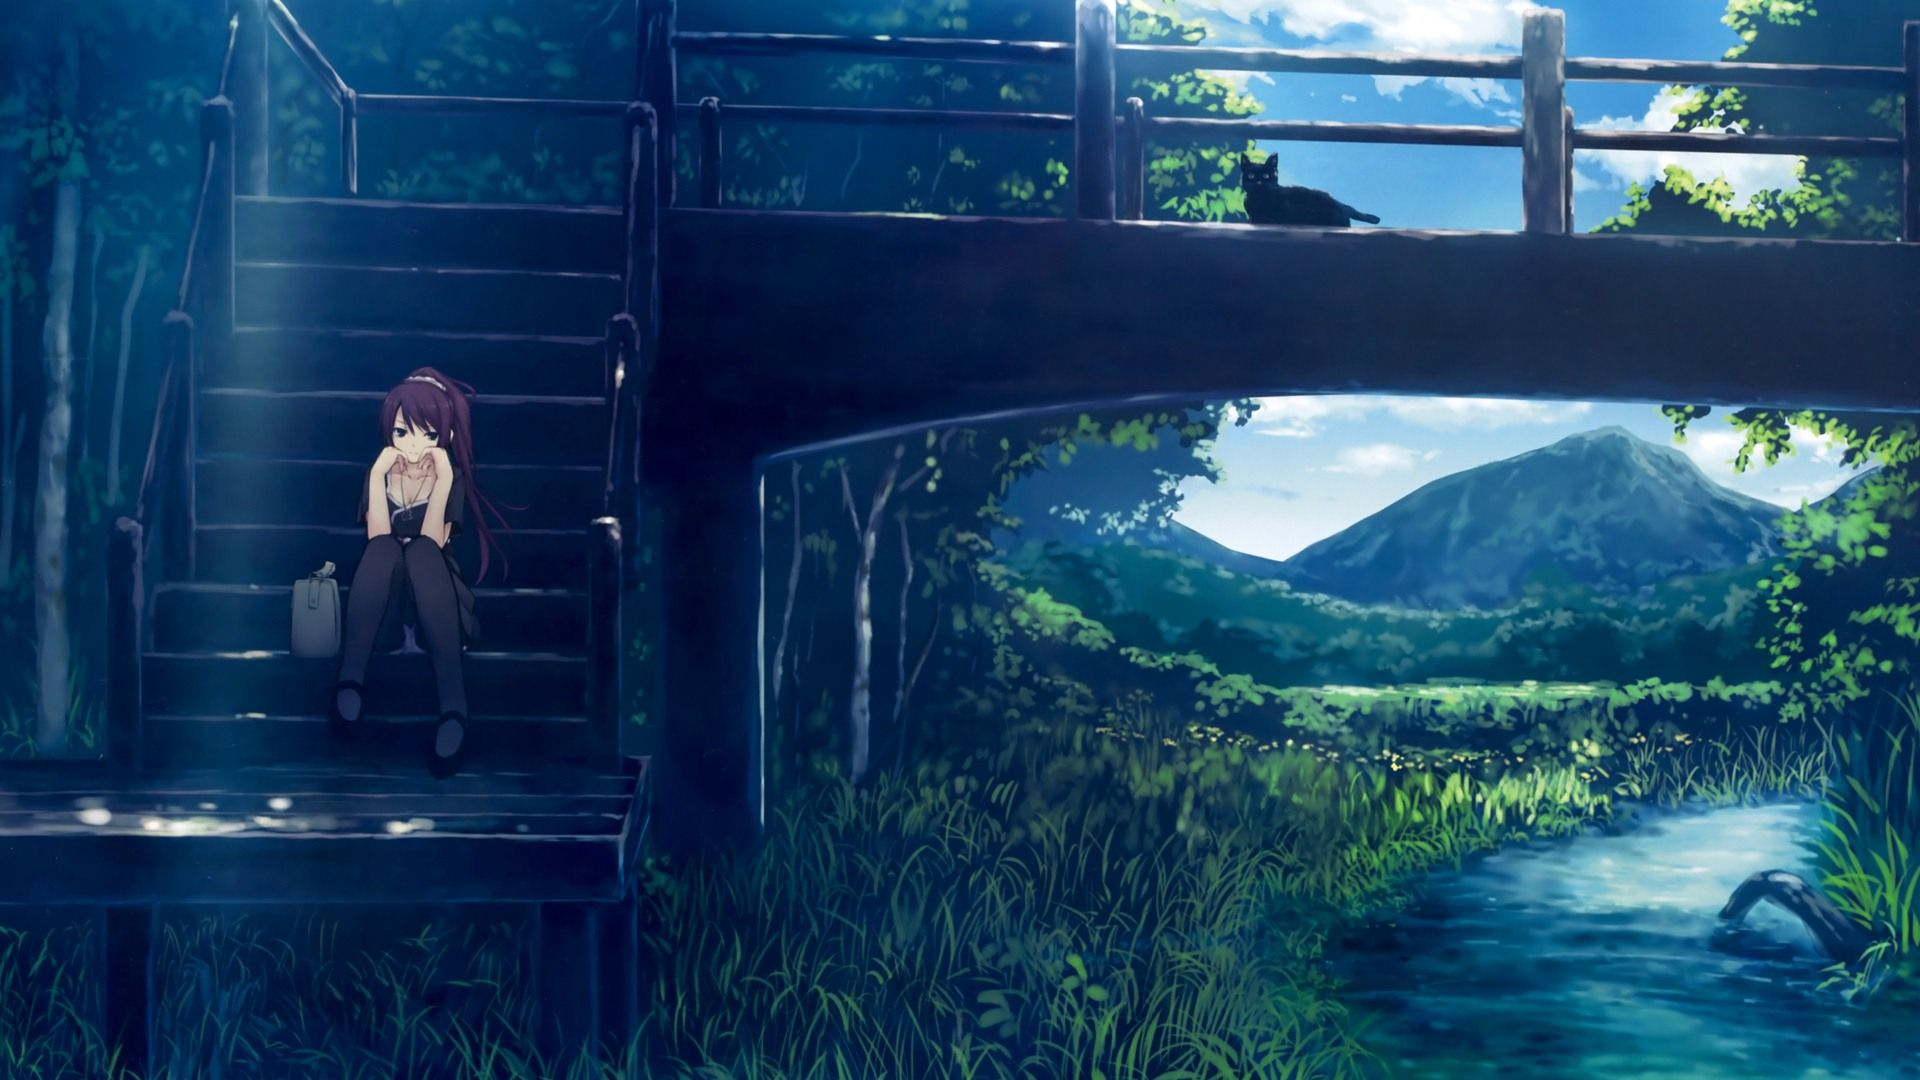 anime backgrounds scenery